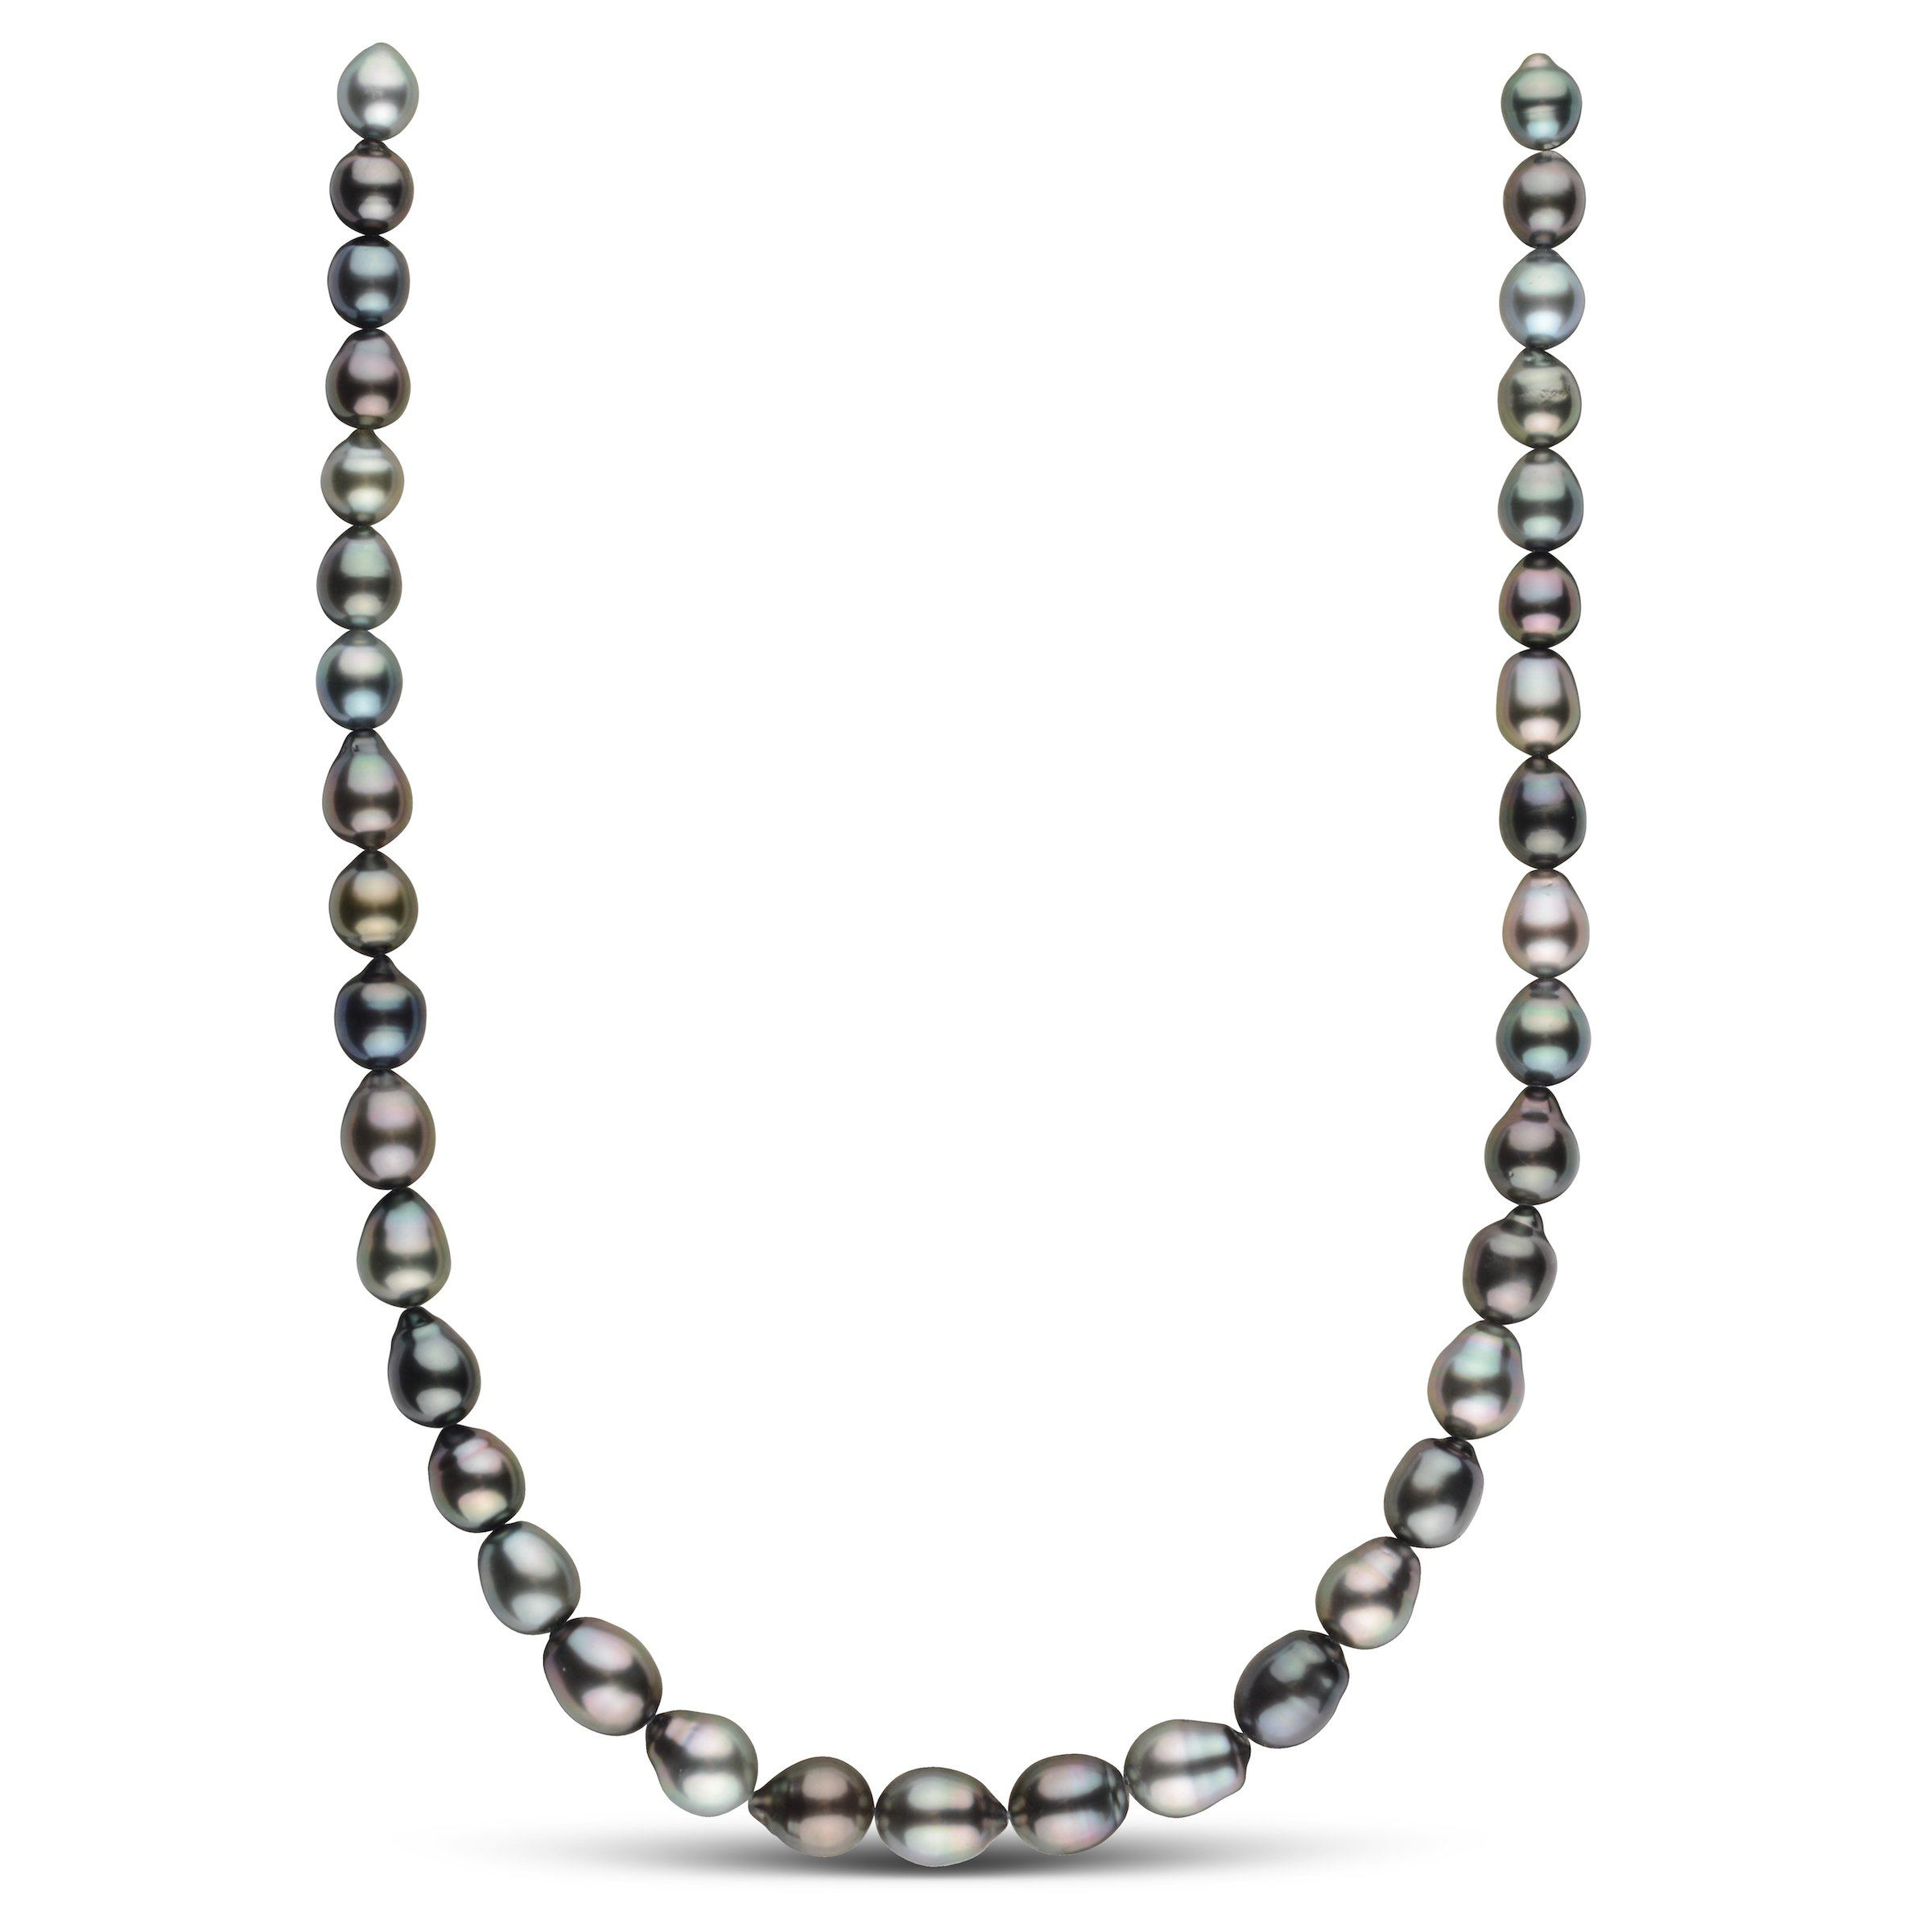 8.5-10.3 mm AAA Tahitian Drop Pearl Necklace